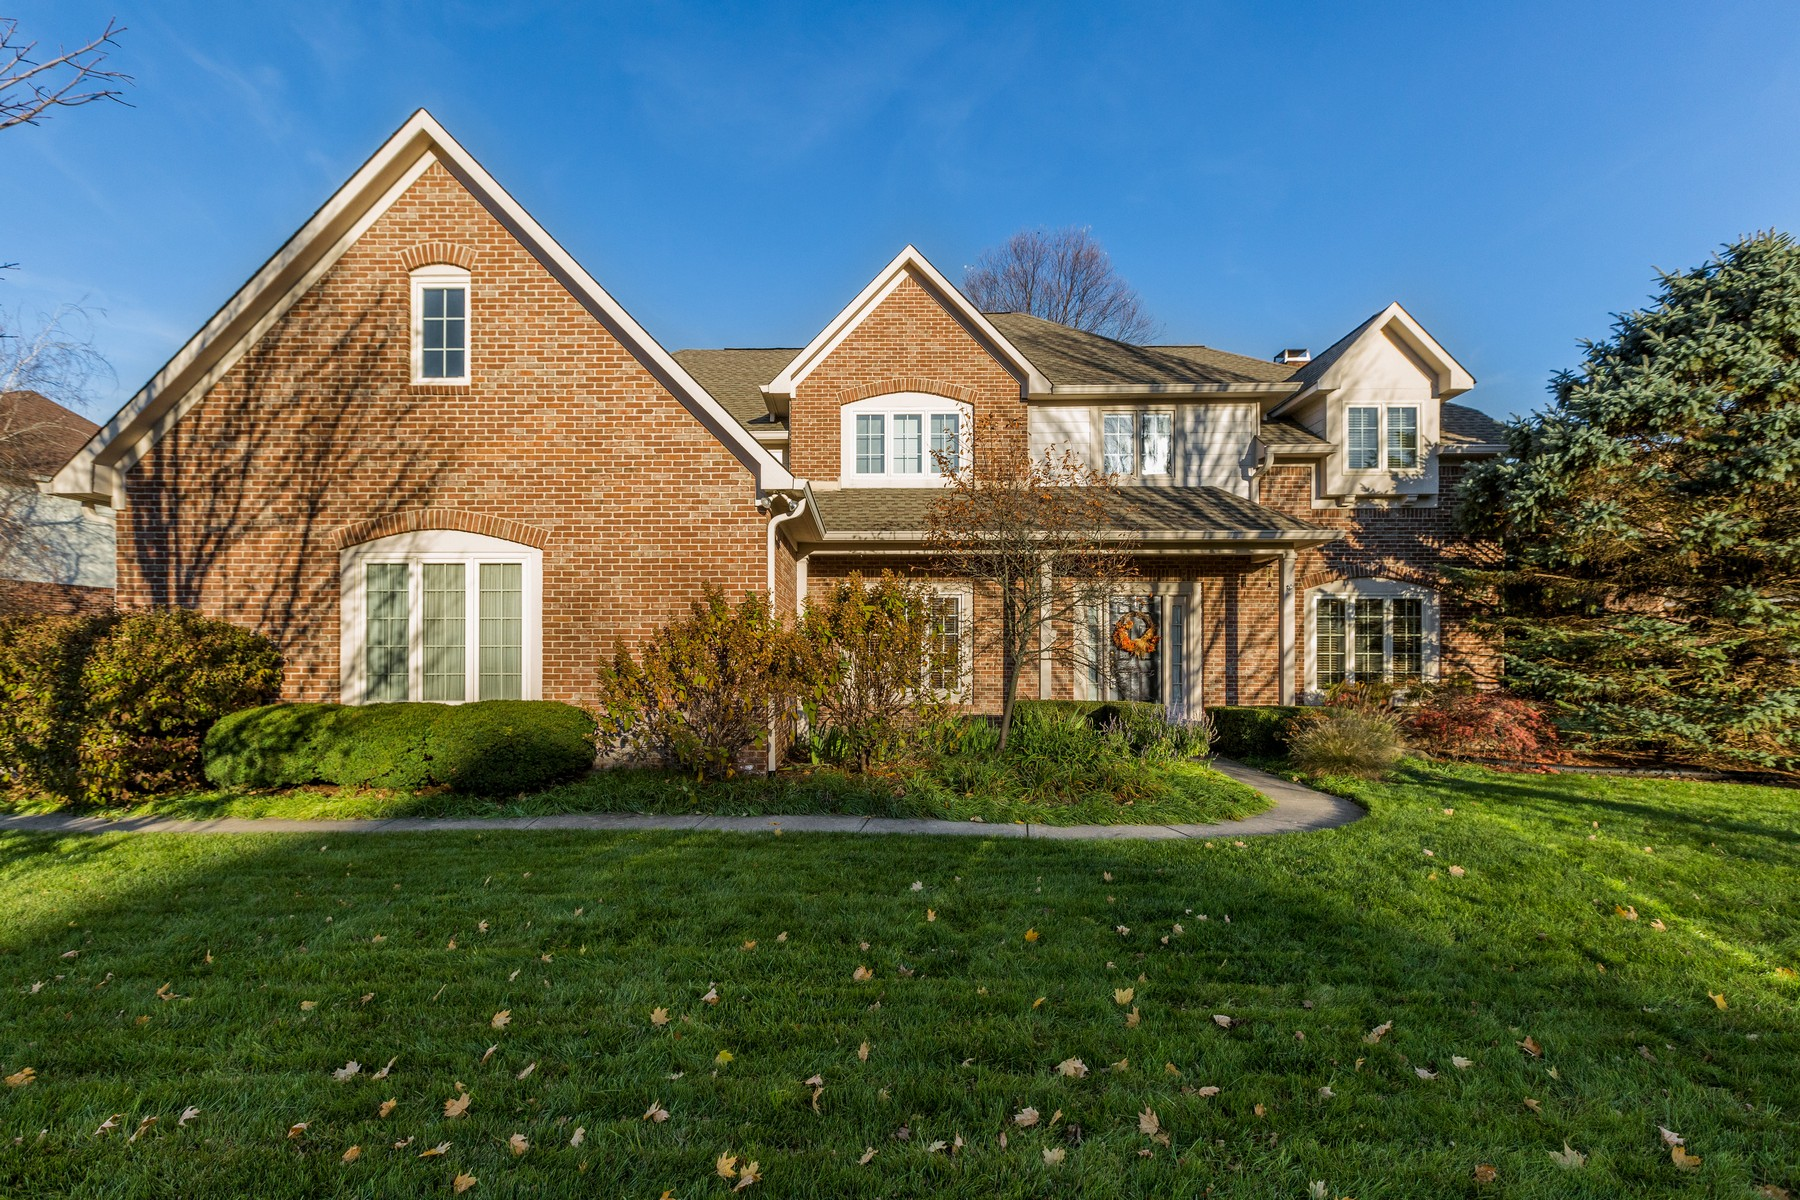 Single Family Home for Sale at Handsome, Executive Residence in Carmel 14175 Avian Way, Carmel, Indiana, 46033 United States